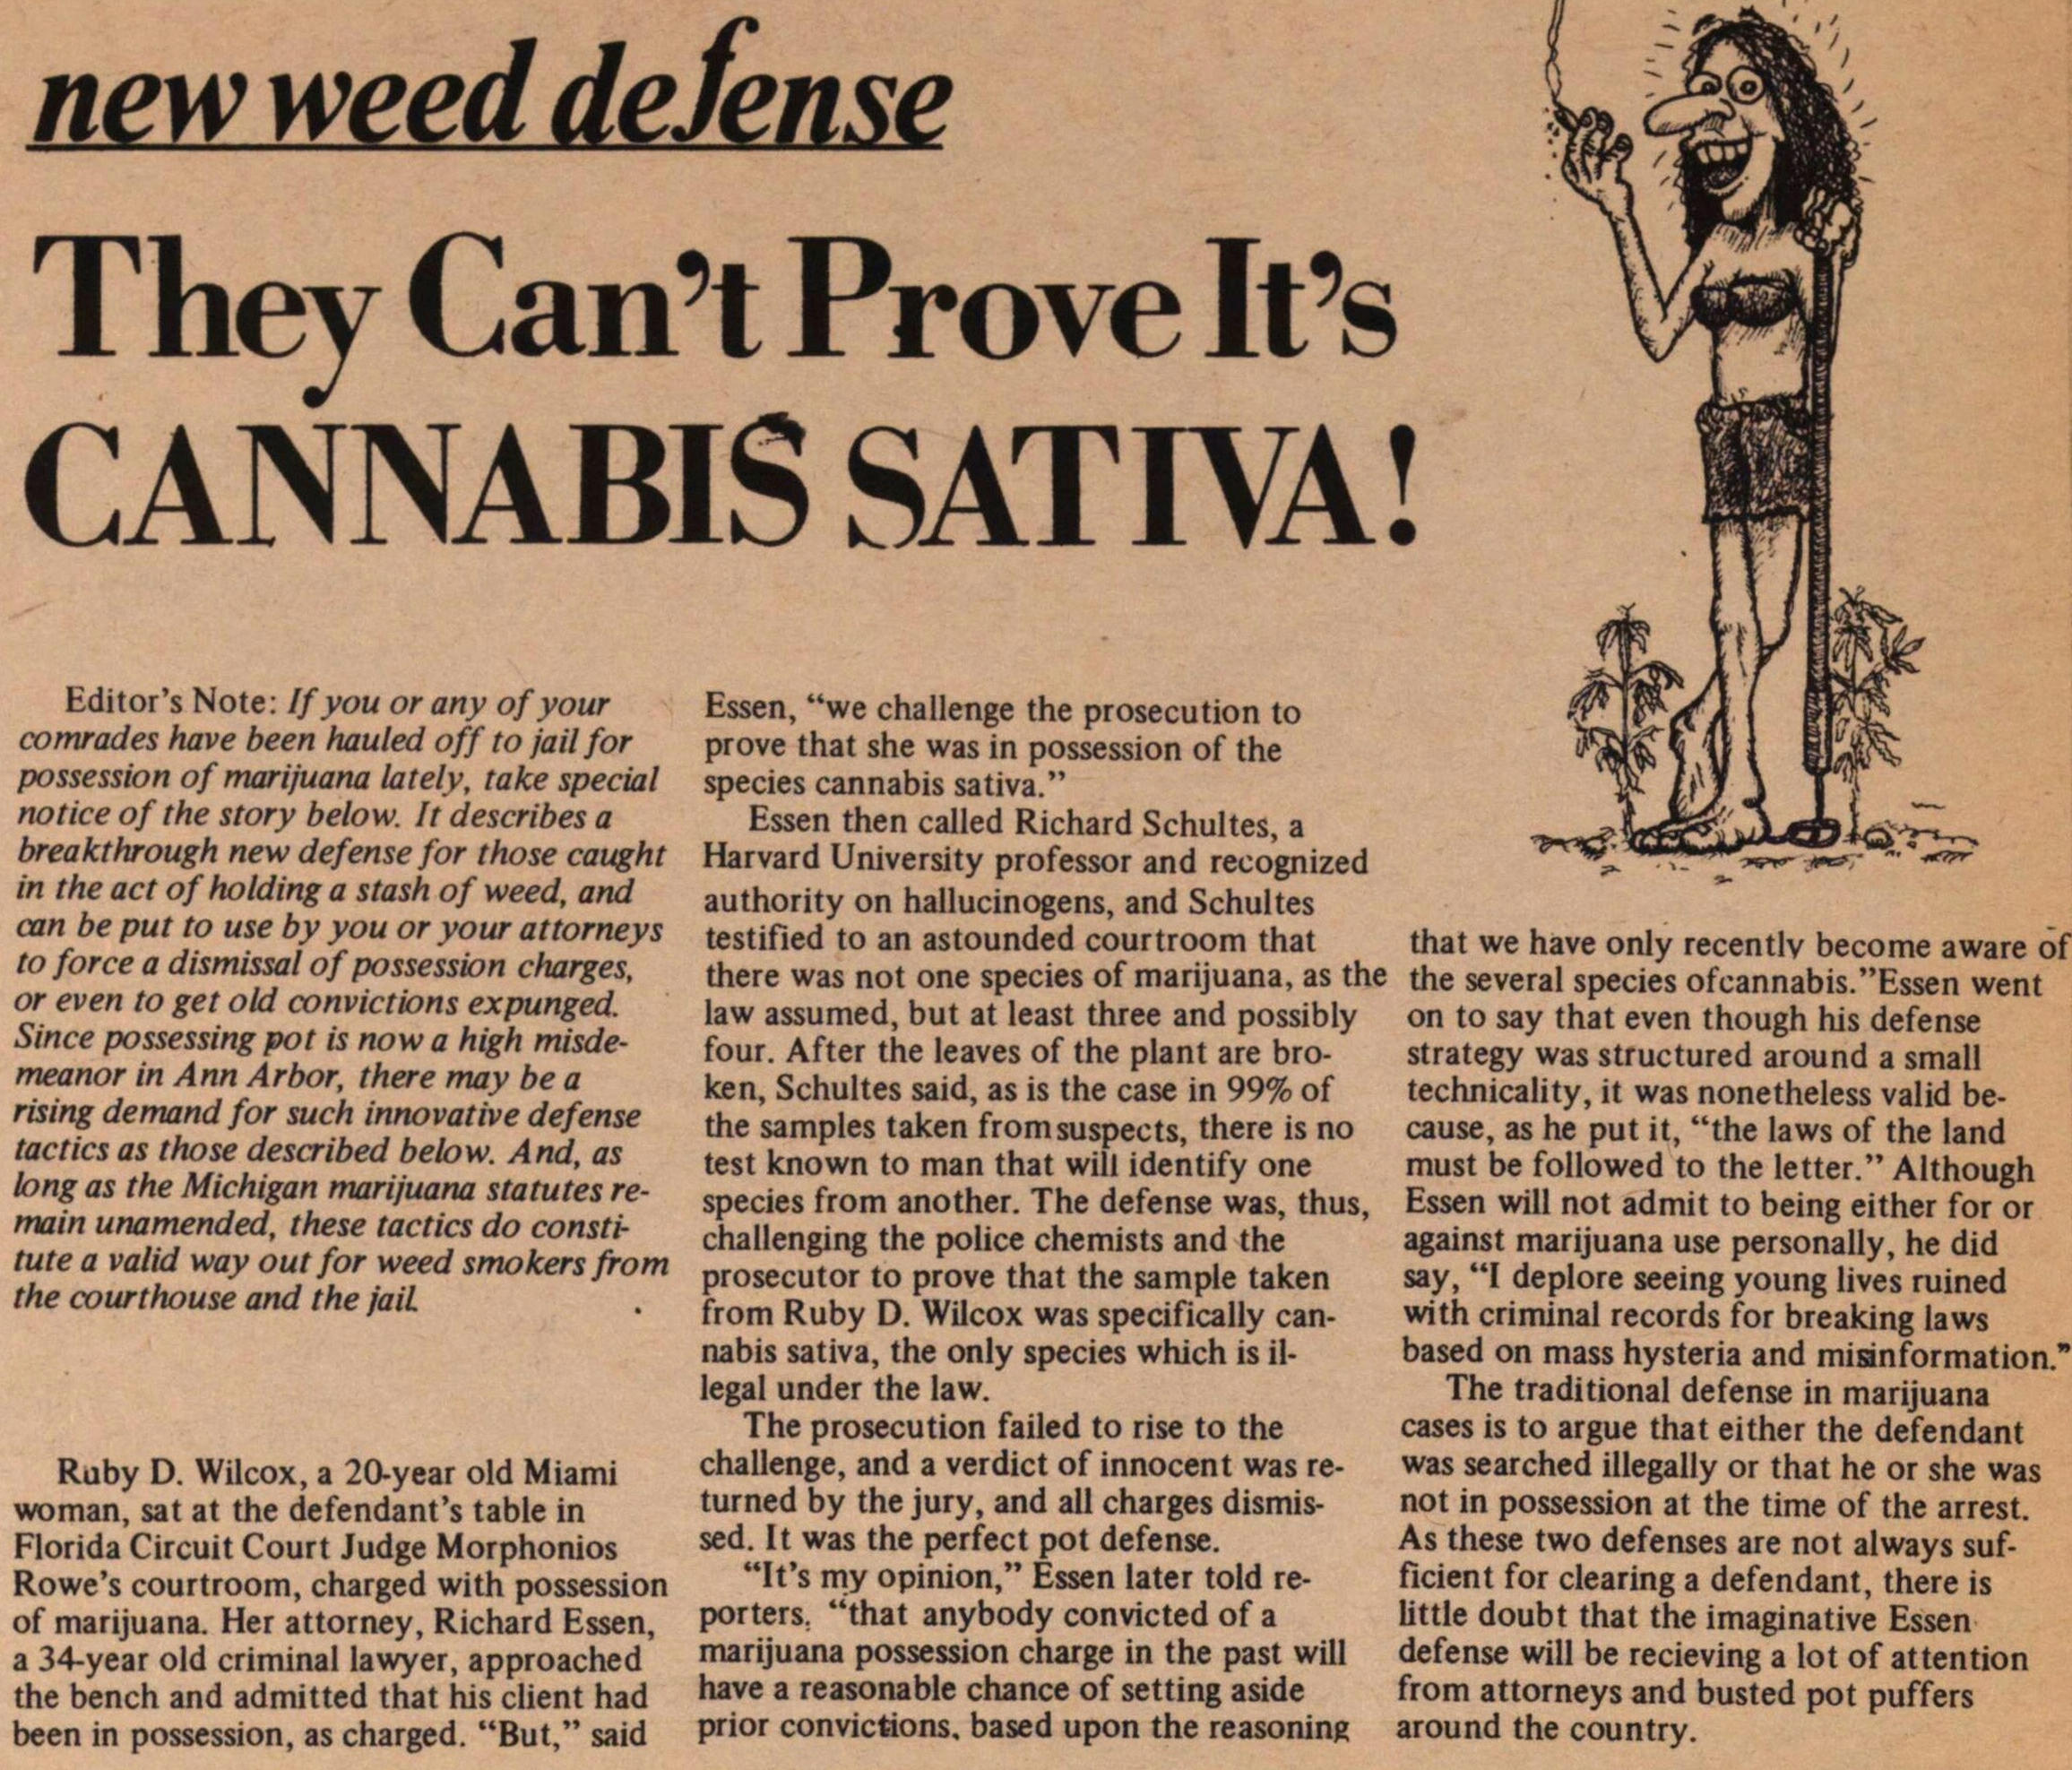 New Weed Defense They Can't Prove It's Cannabis Sativa! image